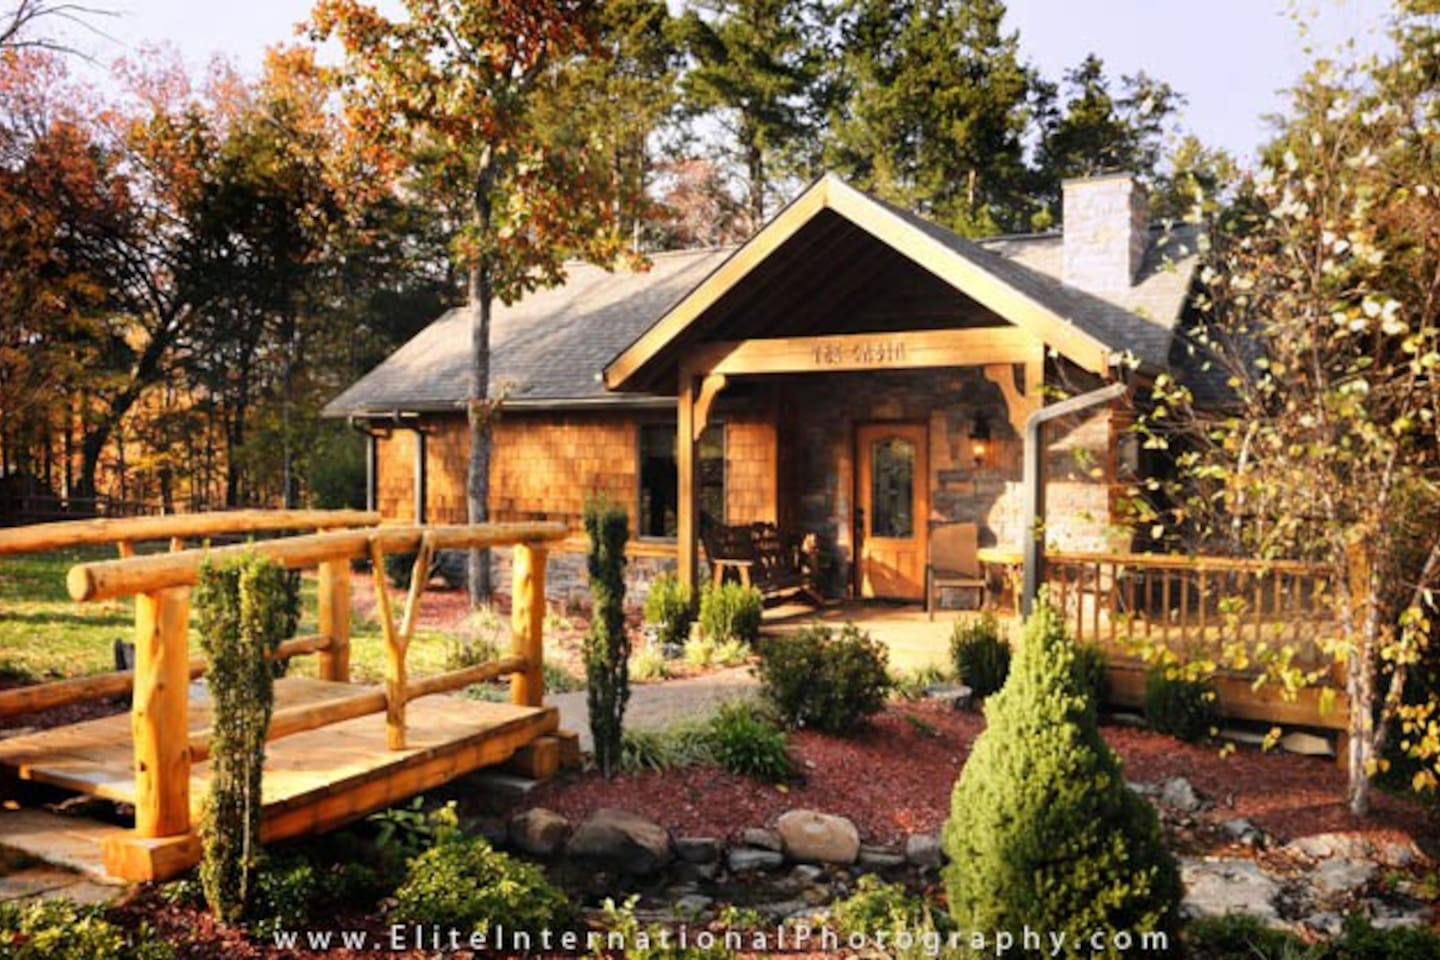 Beautiful landscaping surrounds your Luxury Cabin, complete with its own running brook.